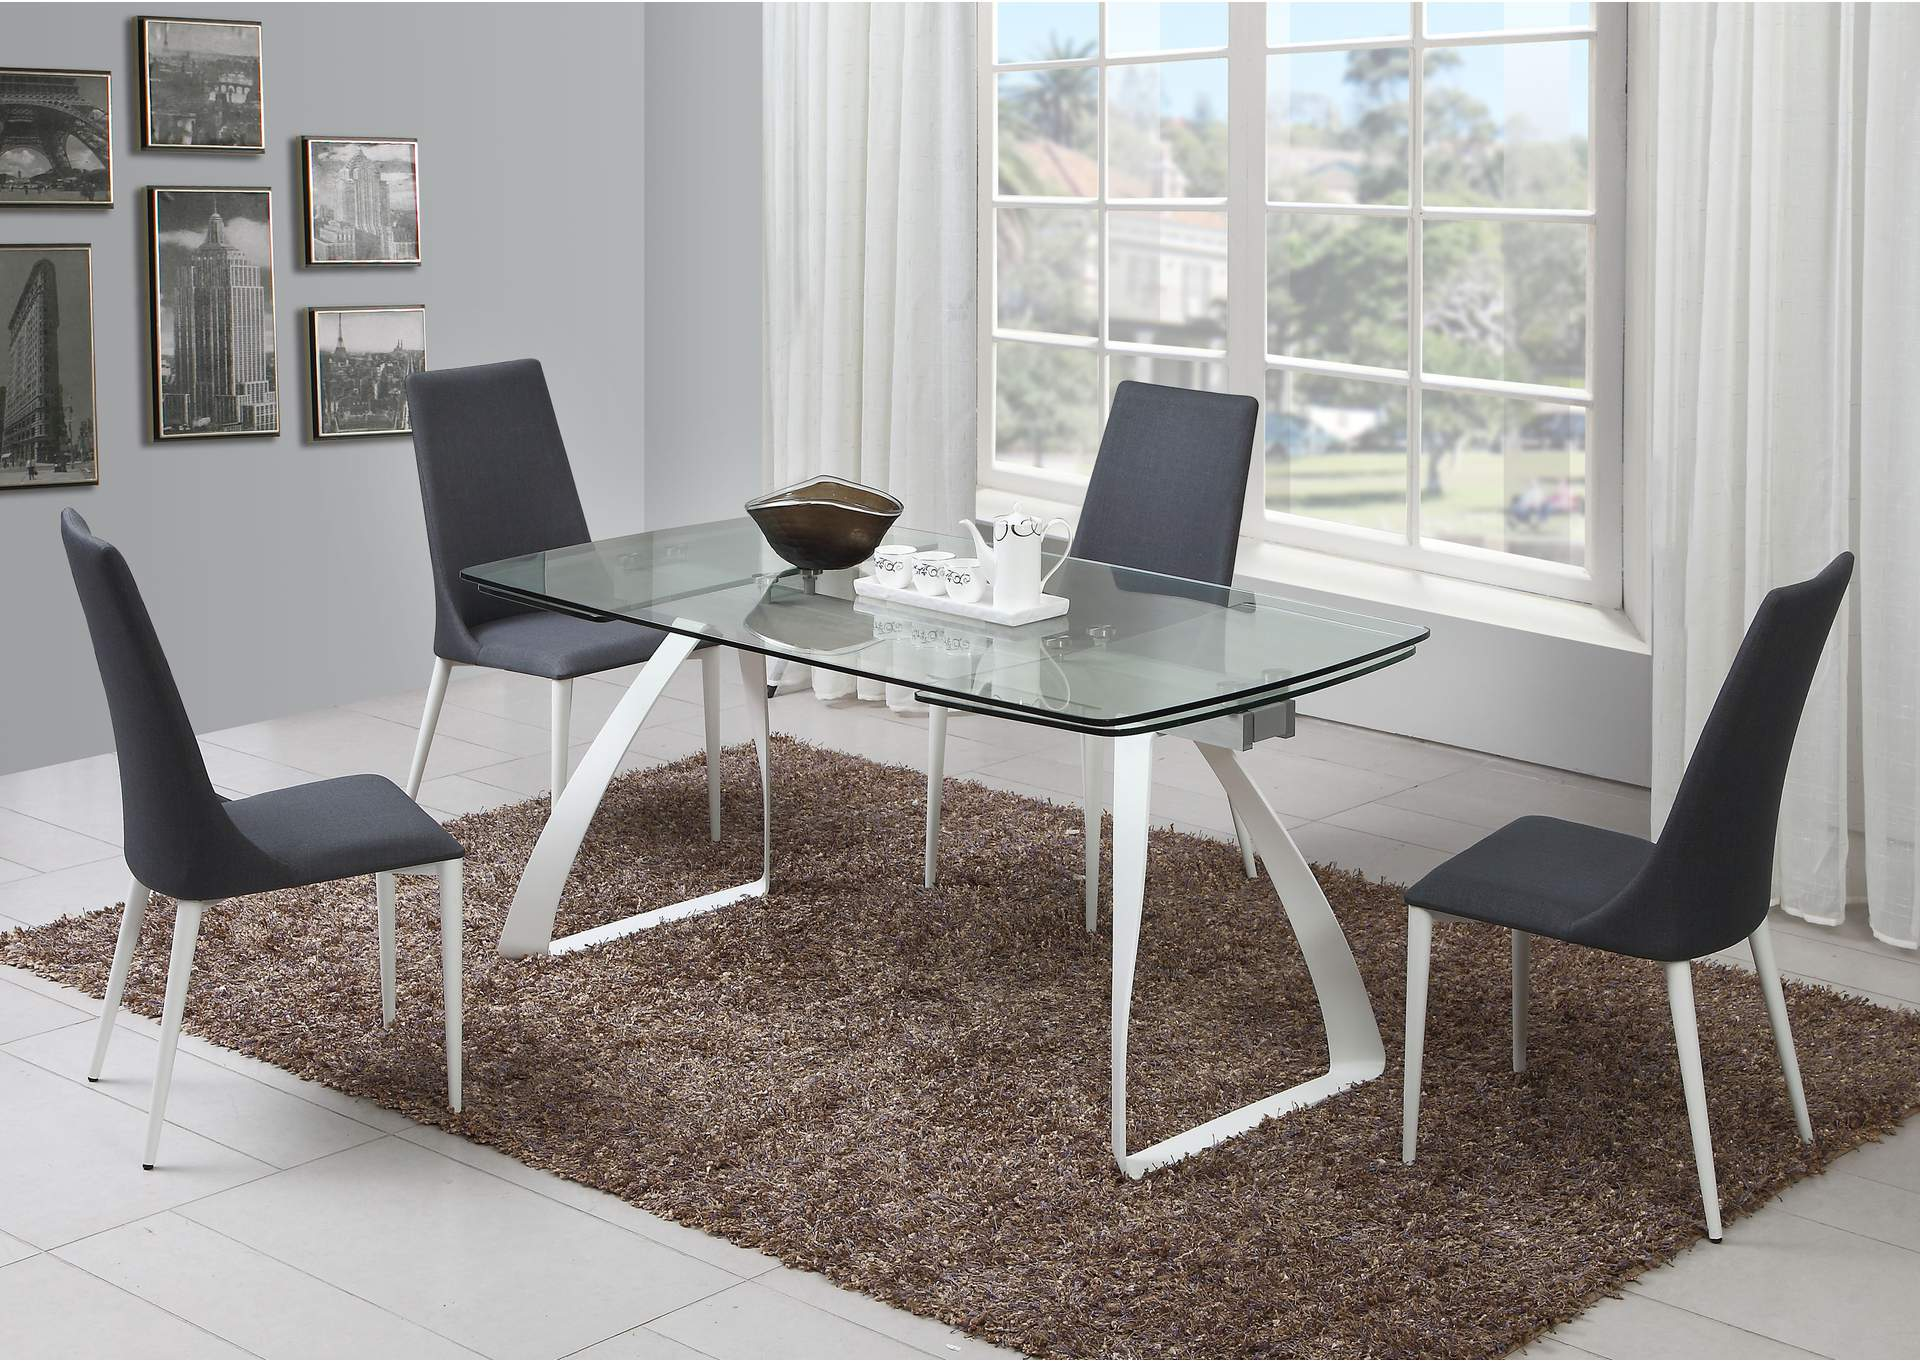 Chloe Grey 5 Piece Glass Top Dining Set,Chintaly Imports